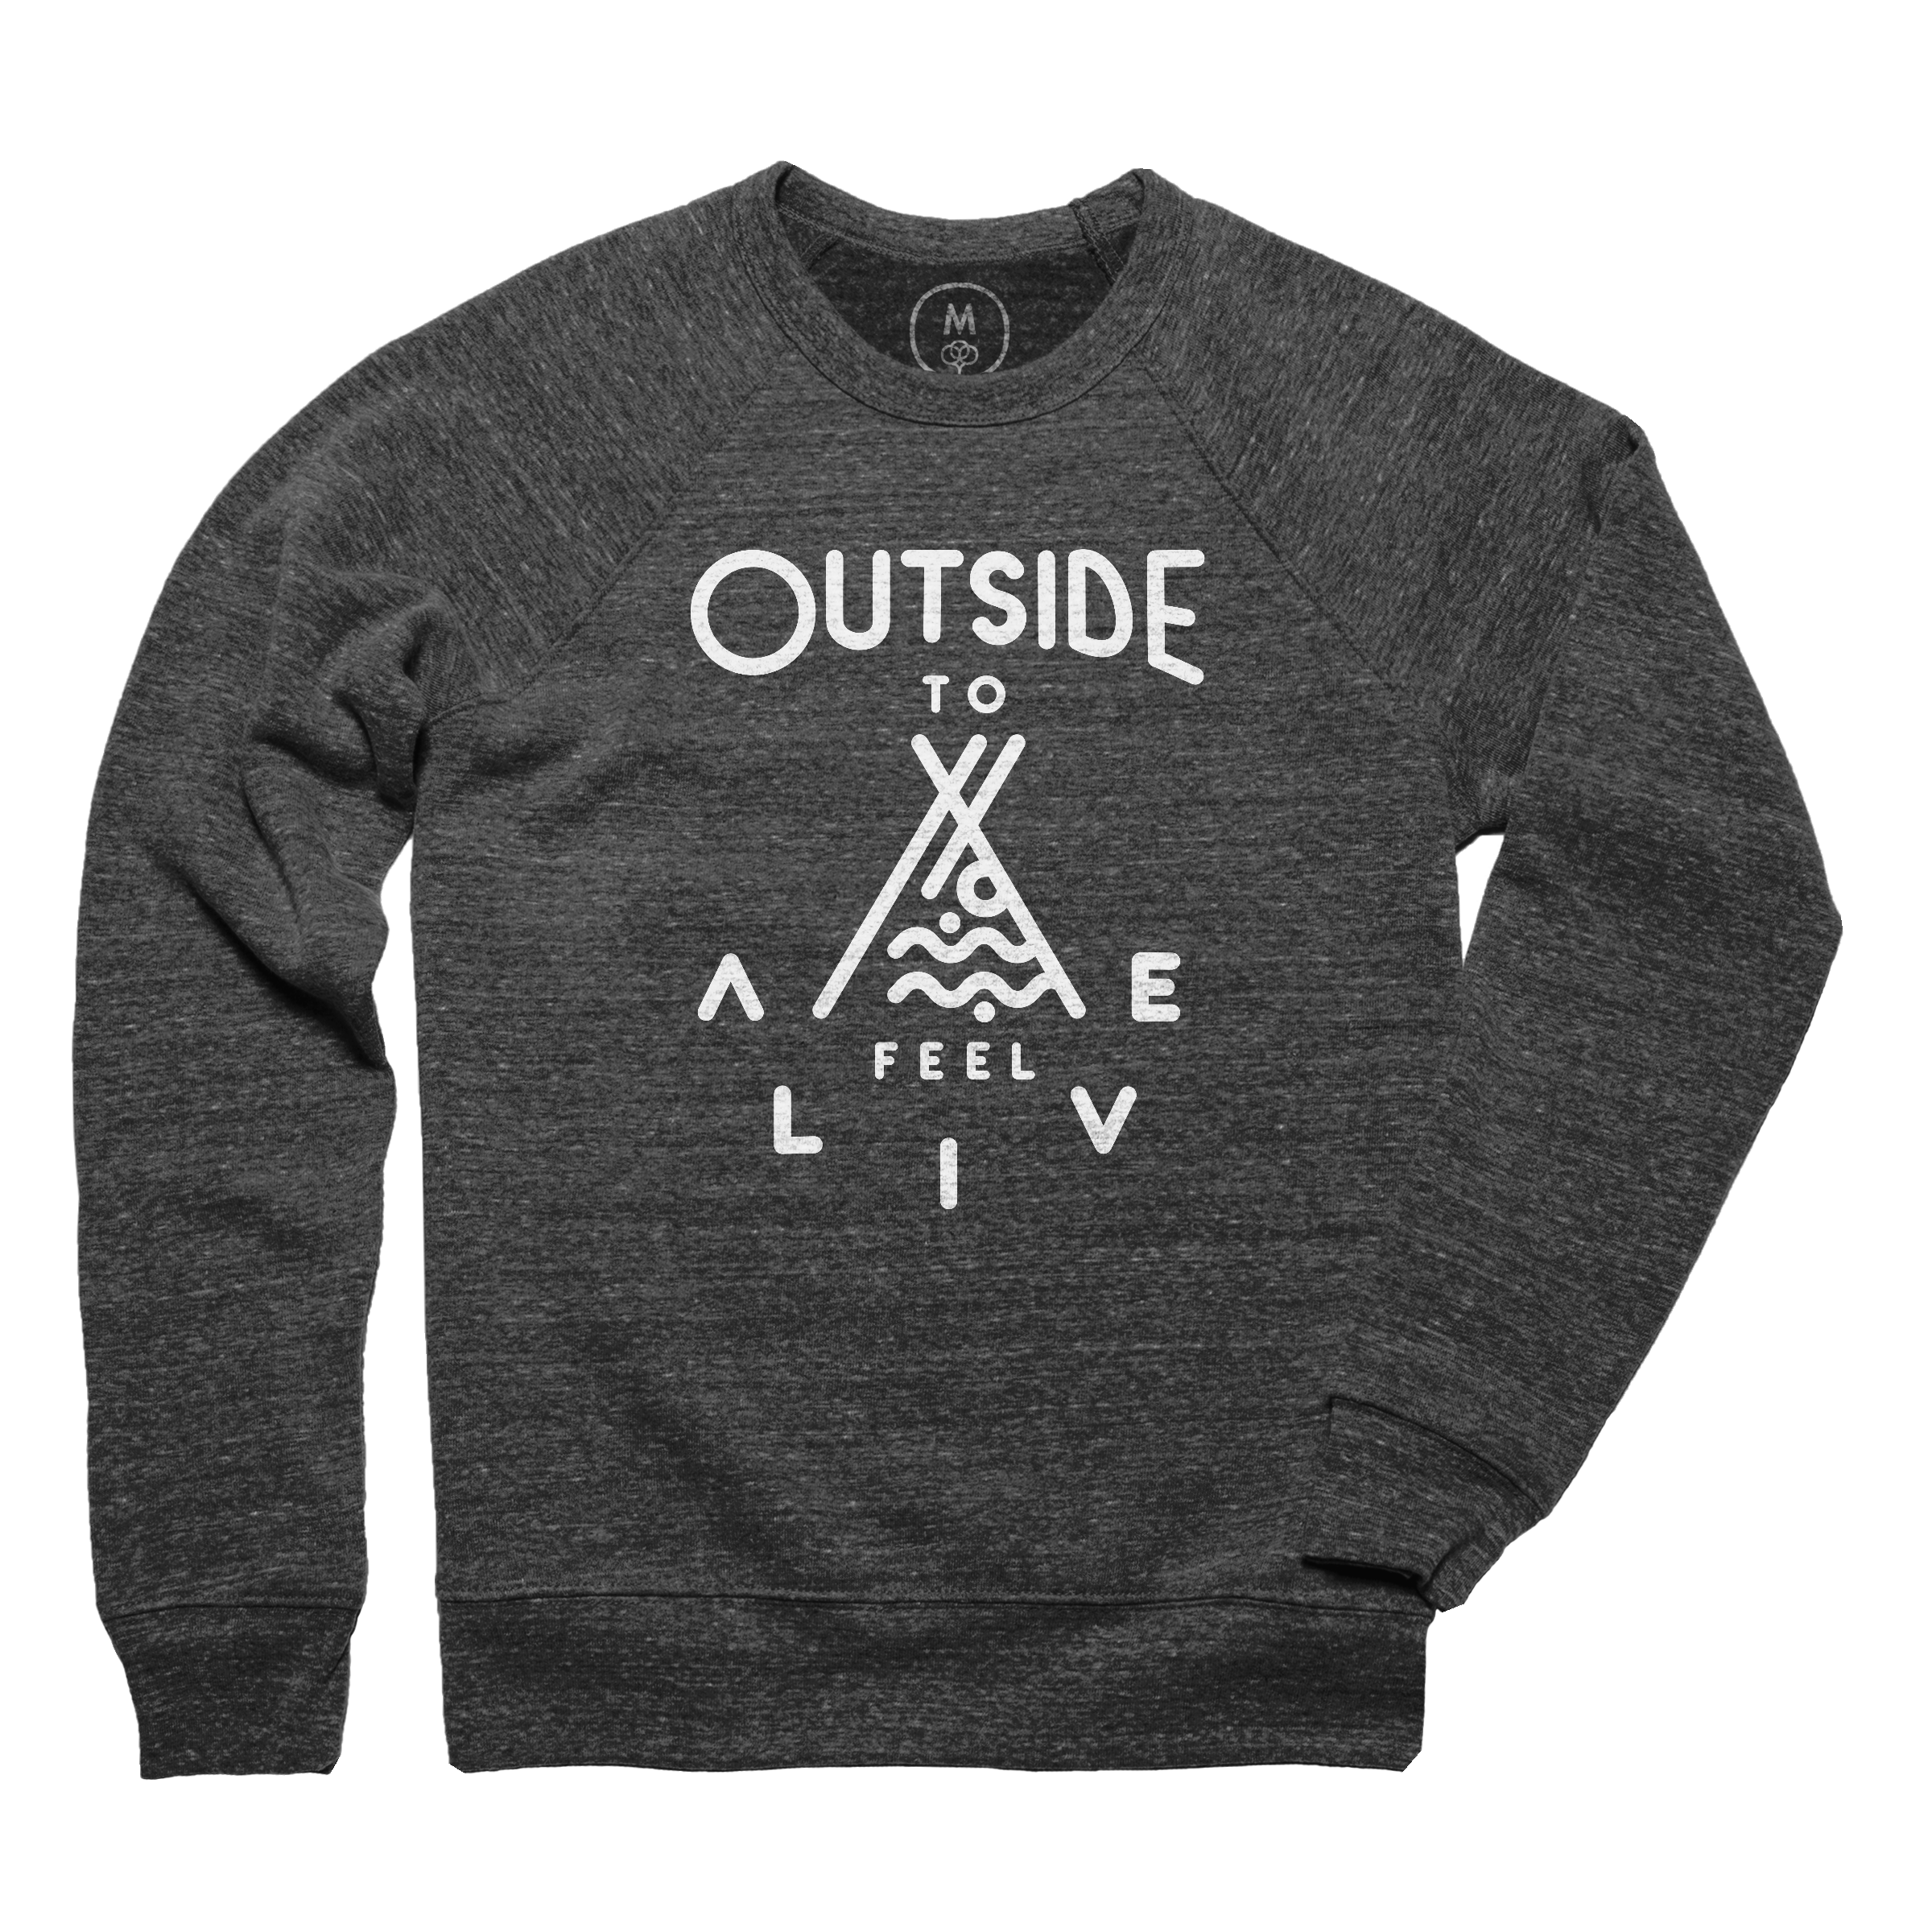 Outside to Feel Alive Pullover Crewneck